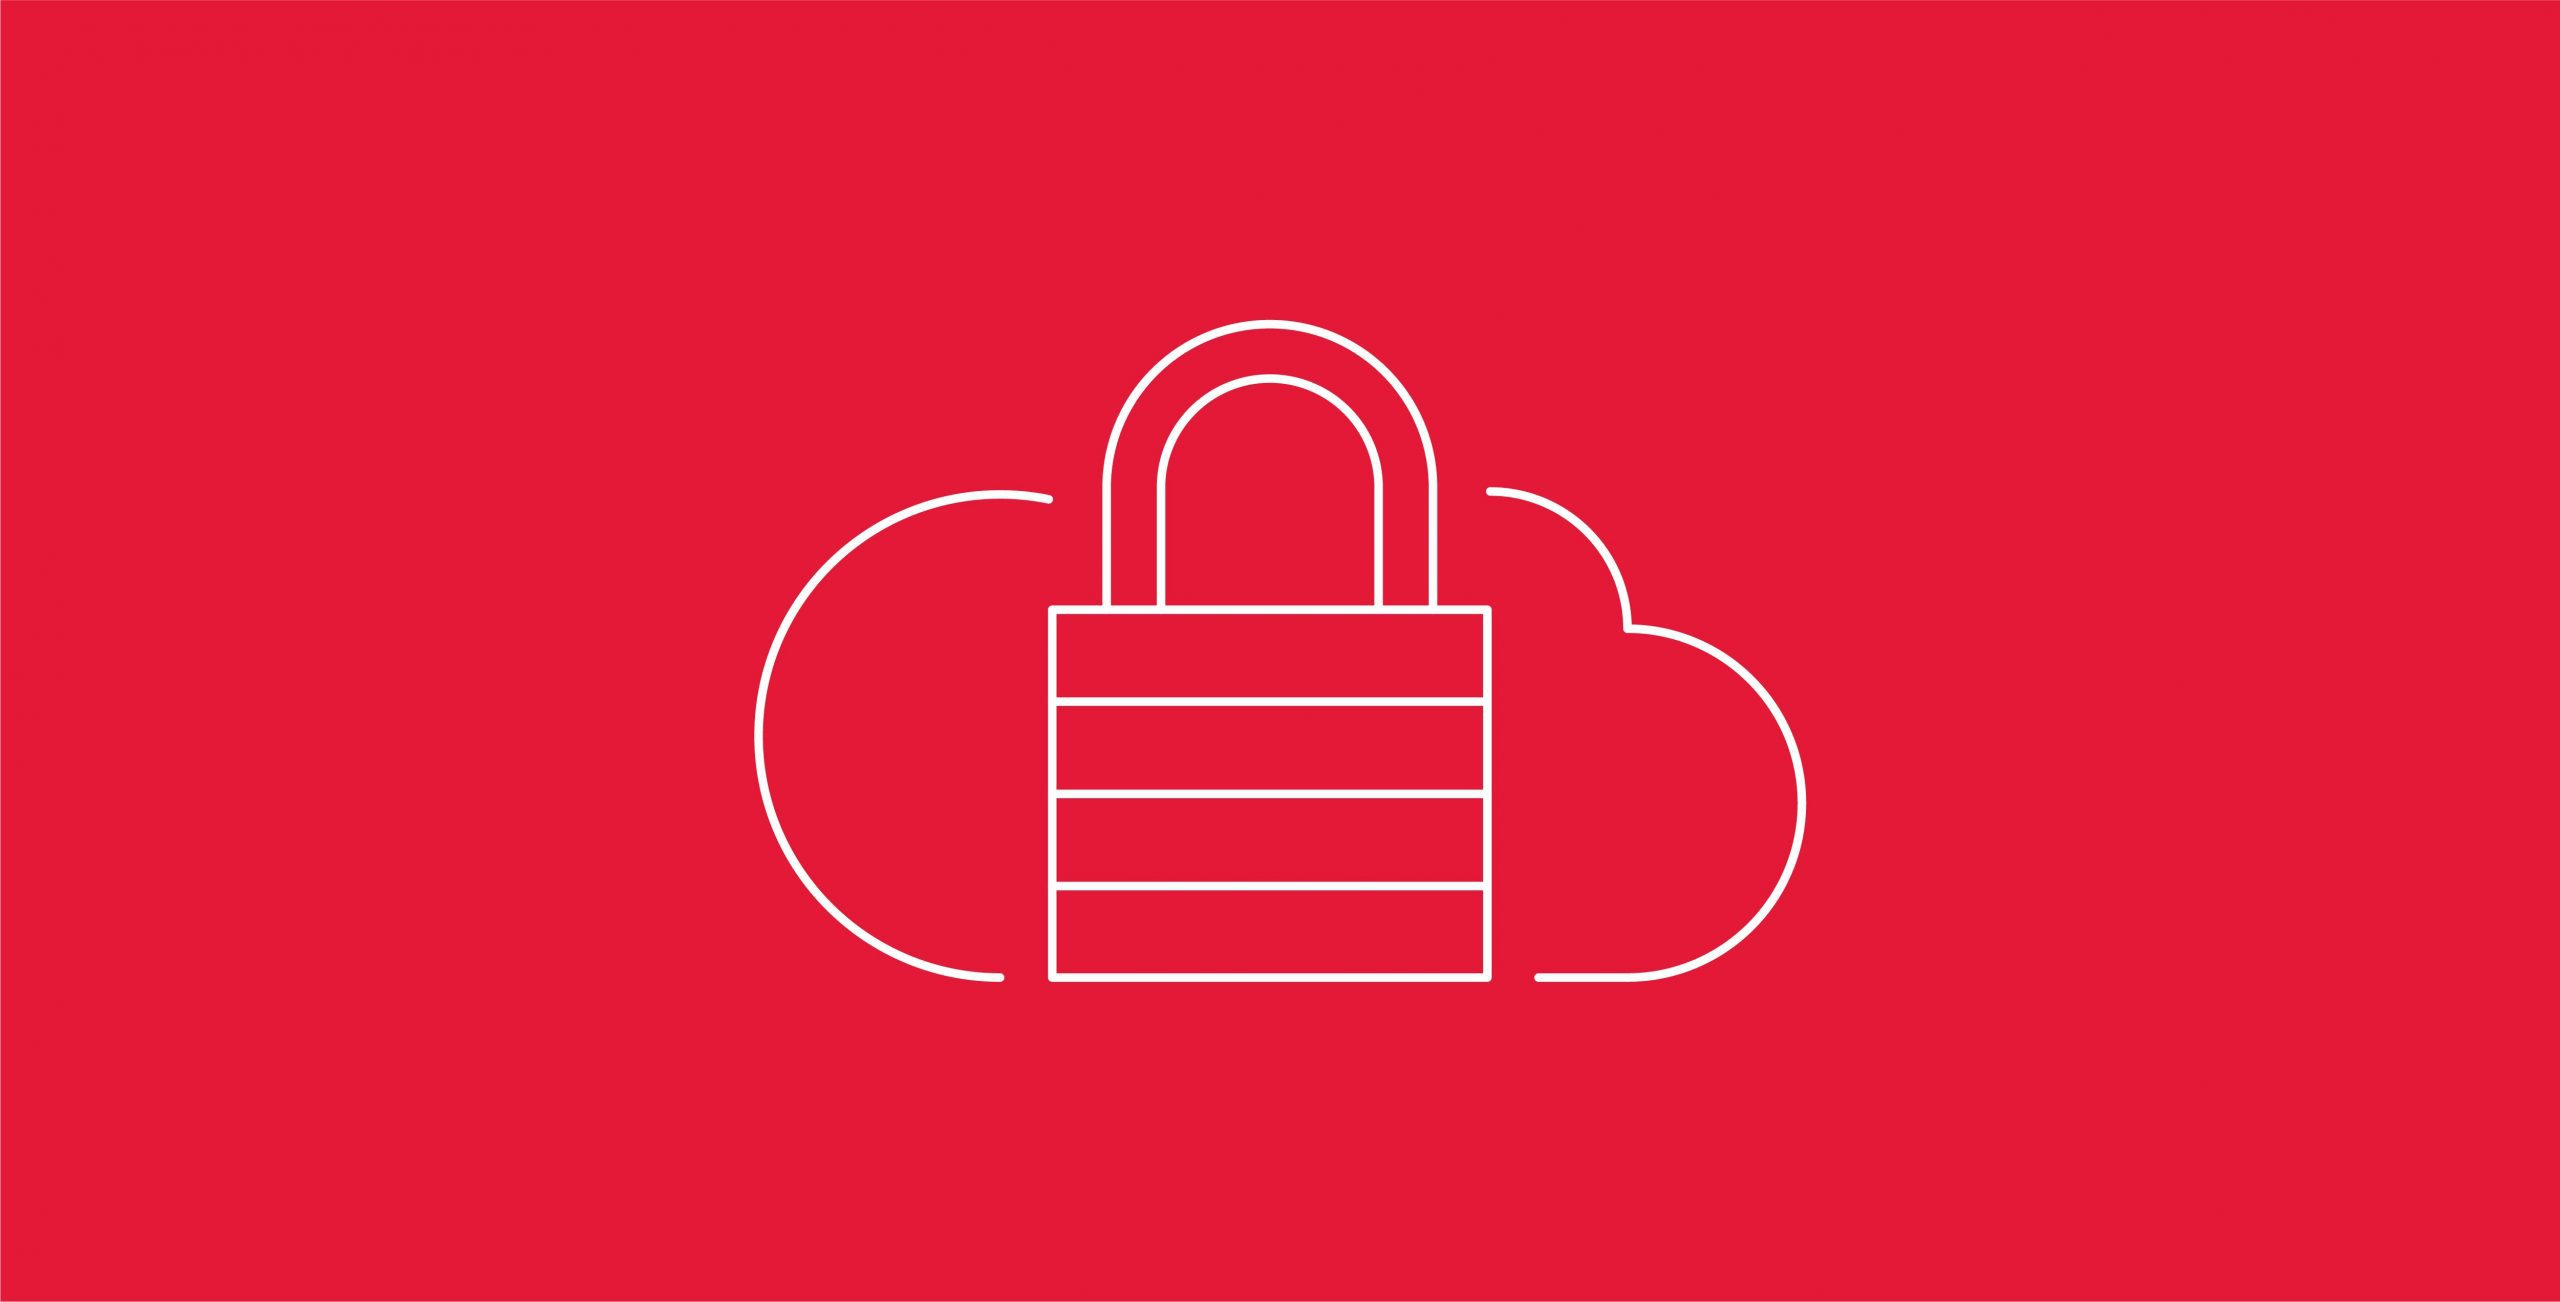 Icon of a cloud and a padlock, symbolizing the concept of vendor lock-in